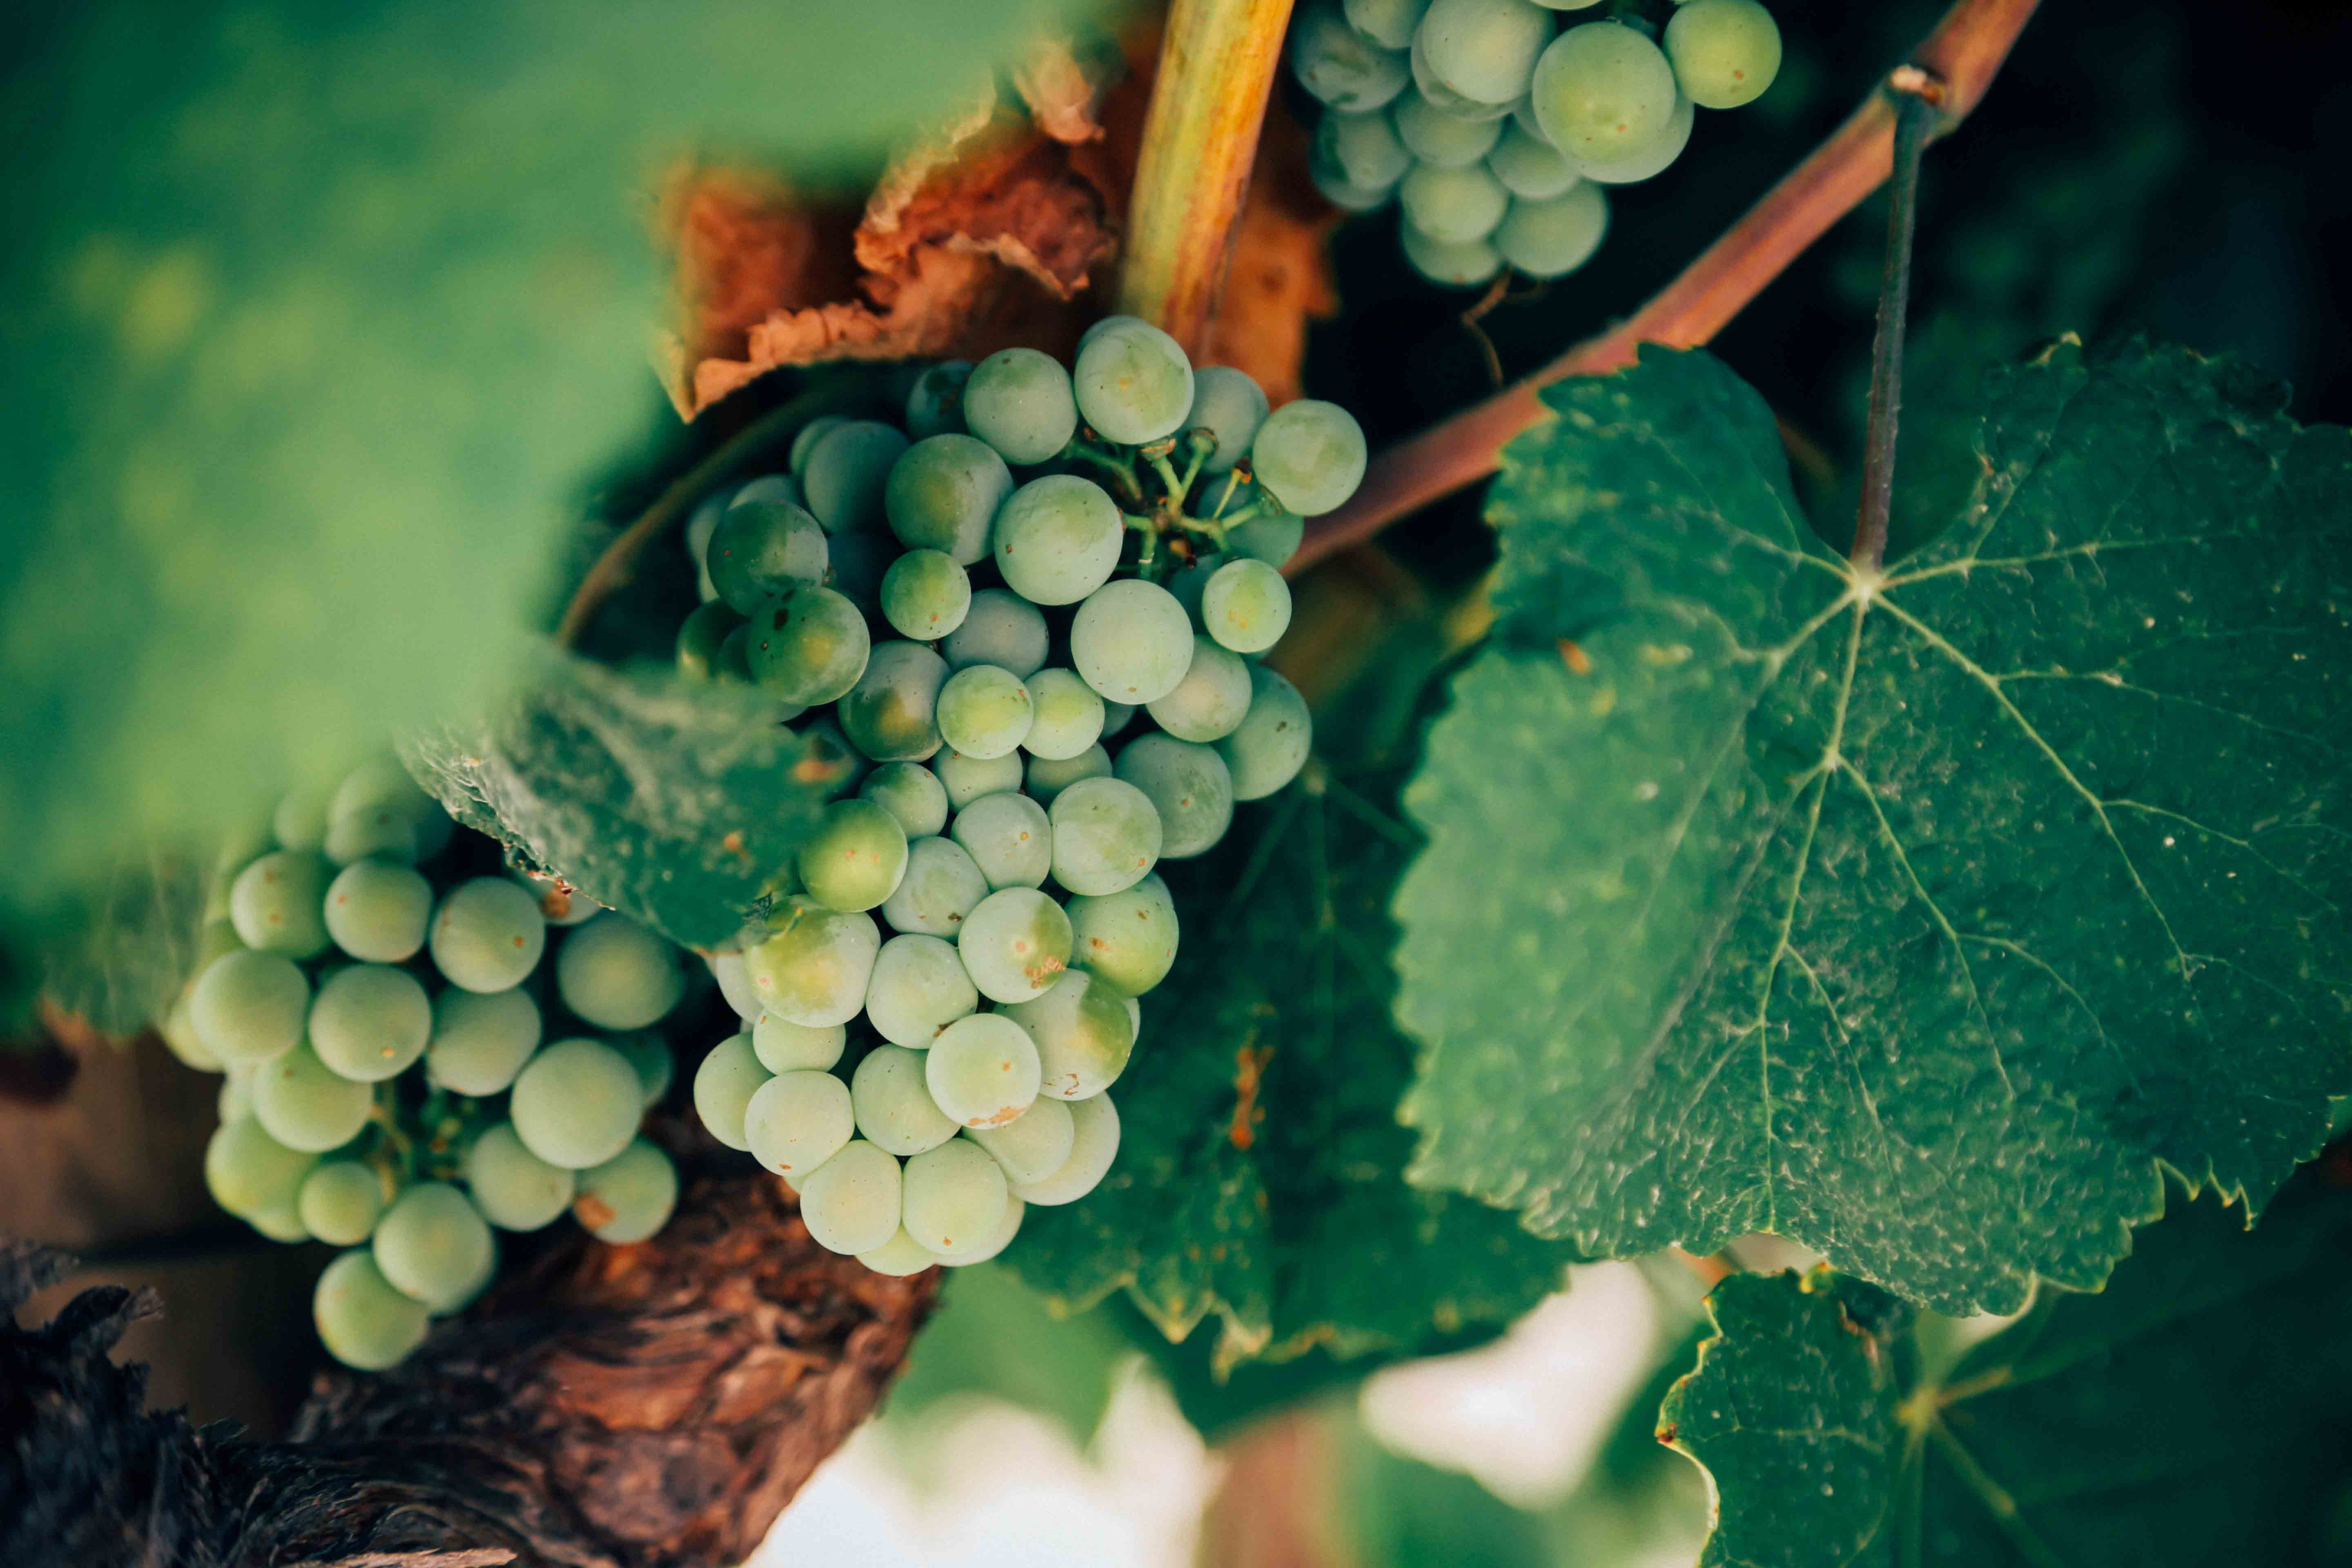 vino-eco-essenialis-foto-unsplash-by-Thomas-Verbruggen